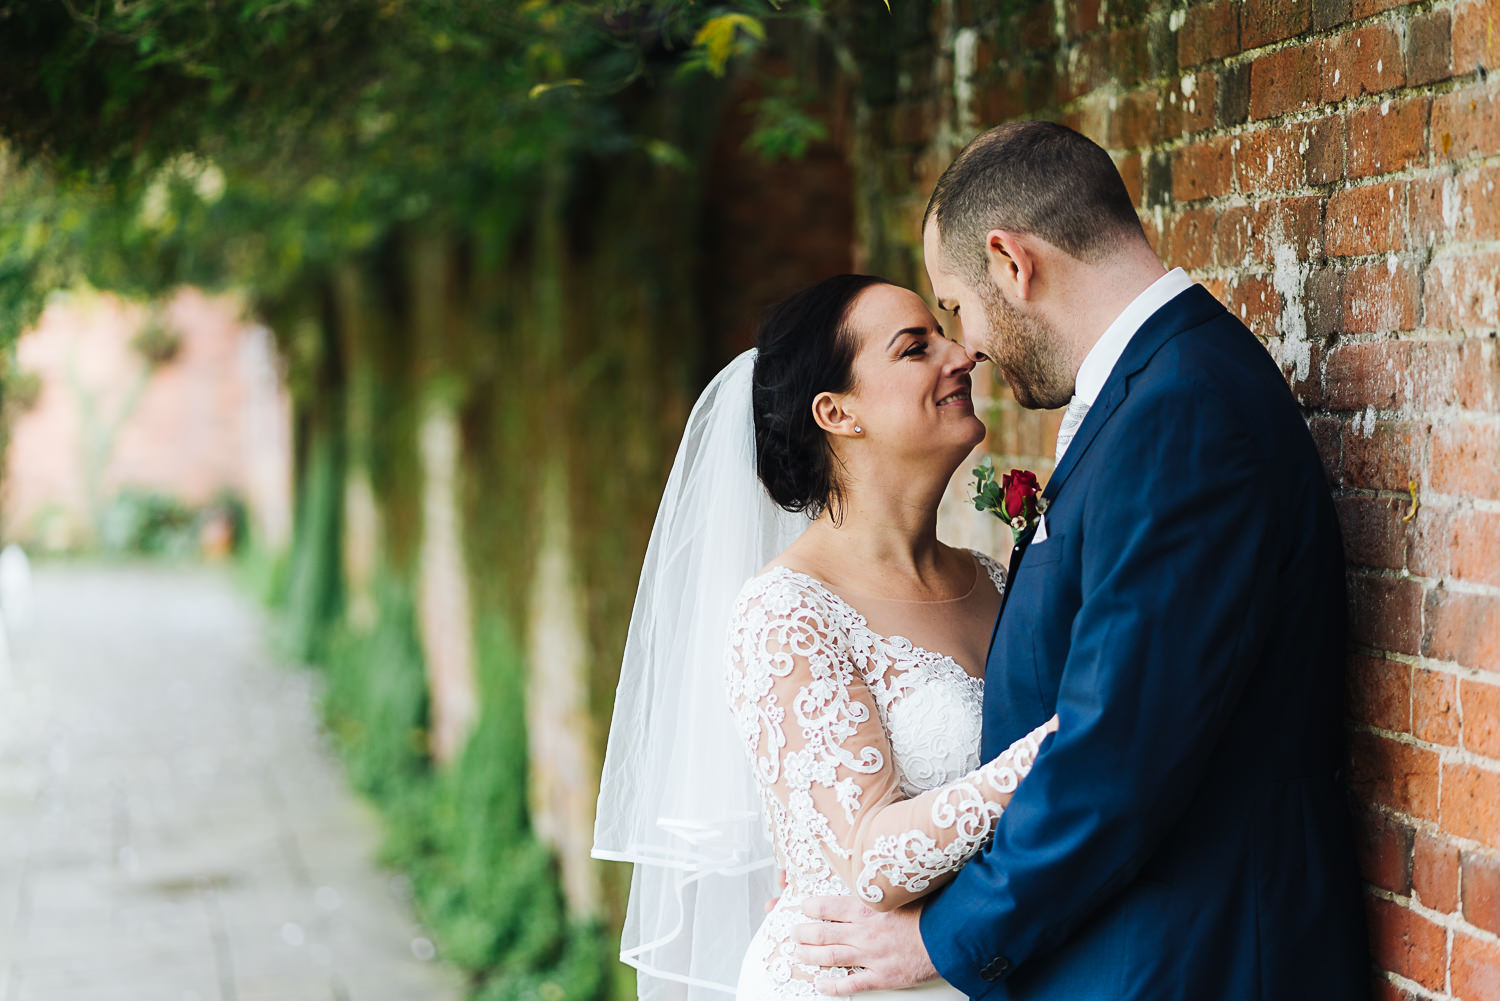 wedding photograper , photographer, Woodhall Manor, IP12 3EG, norfolk, suffolk, wedding photography